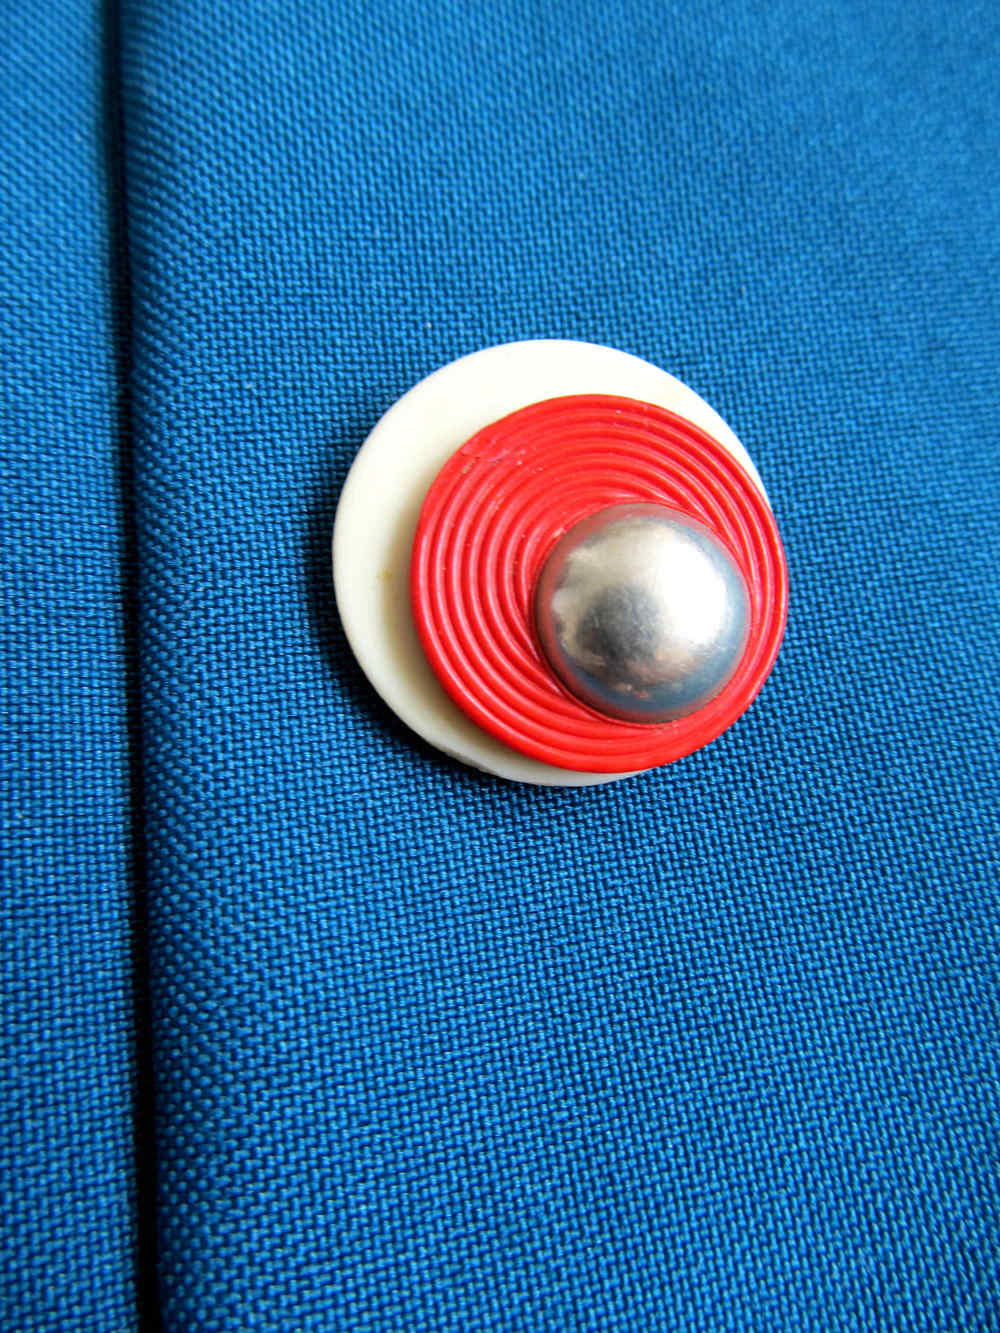 Button close up